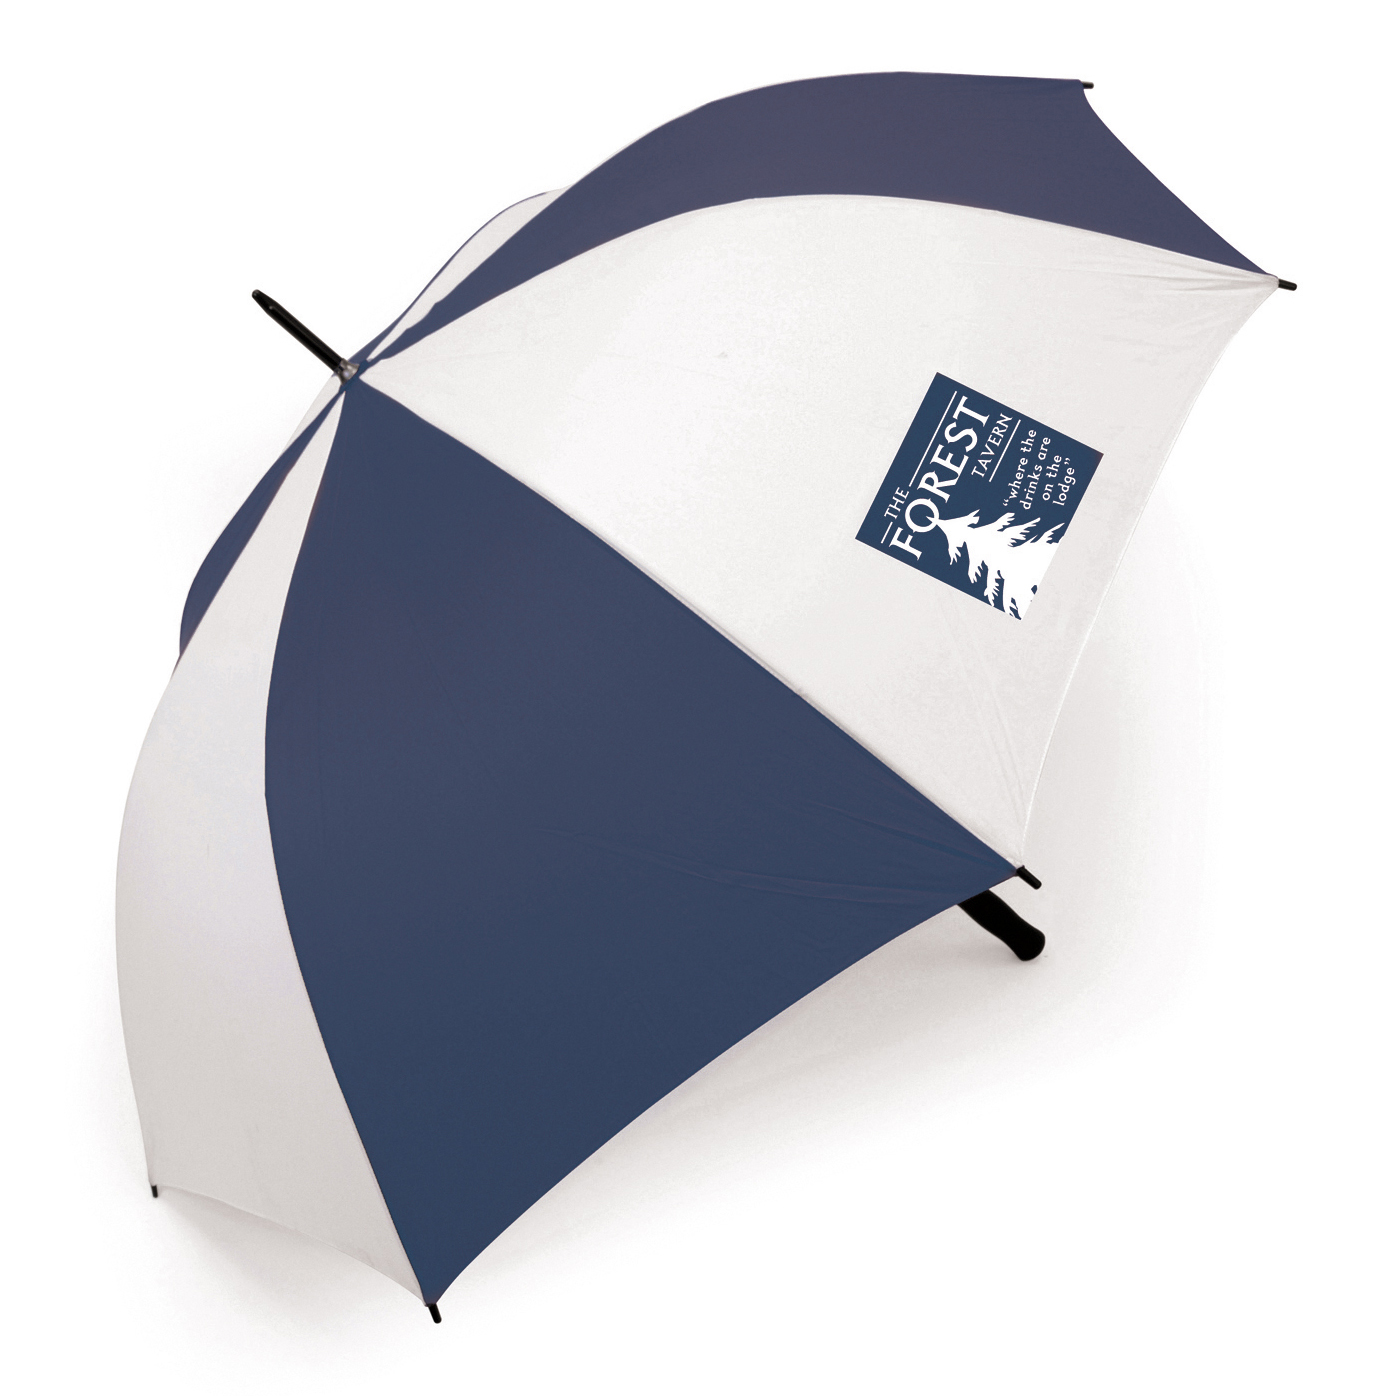 Promotional Rumford 30 Inch Automatic Golf Umbrella